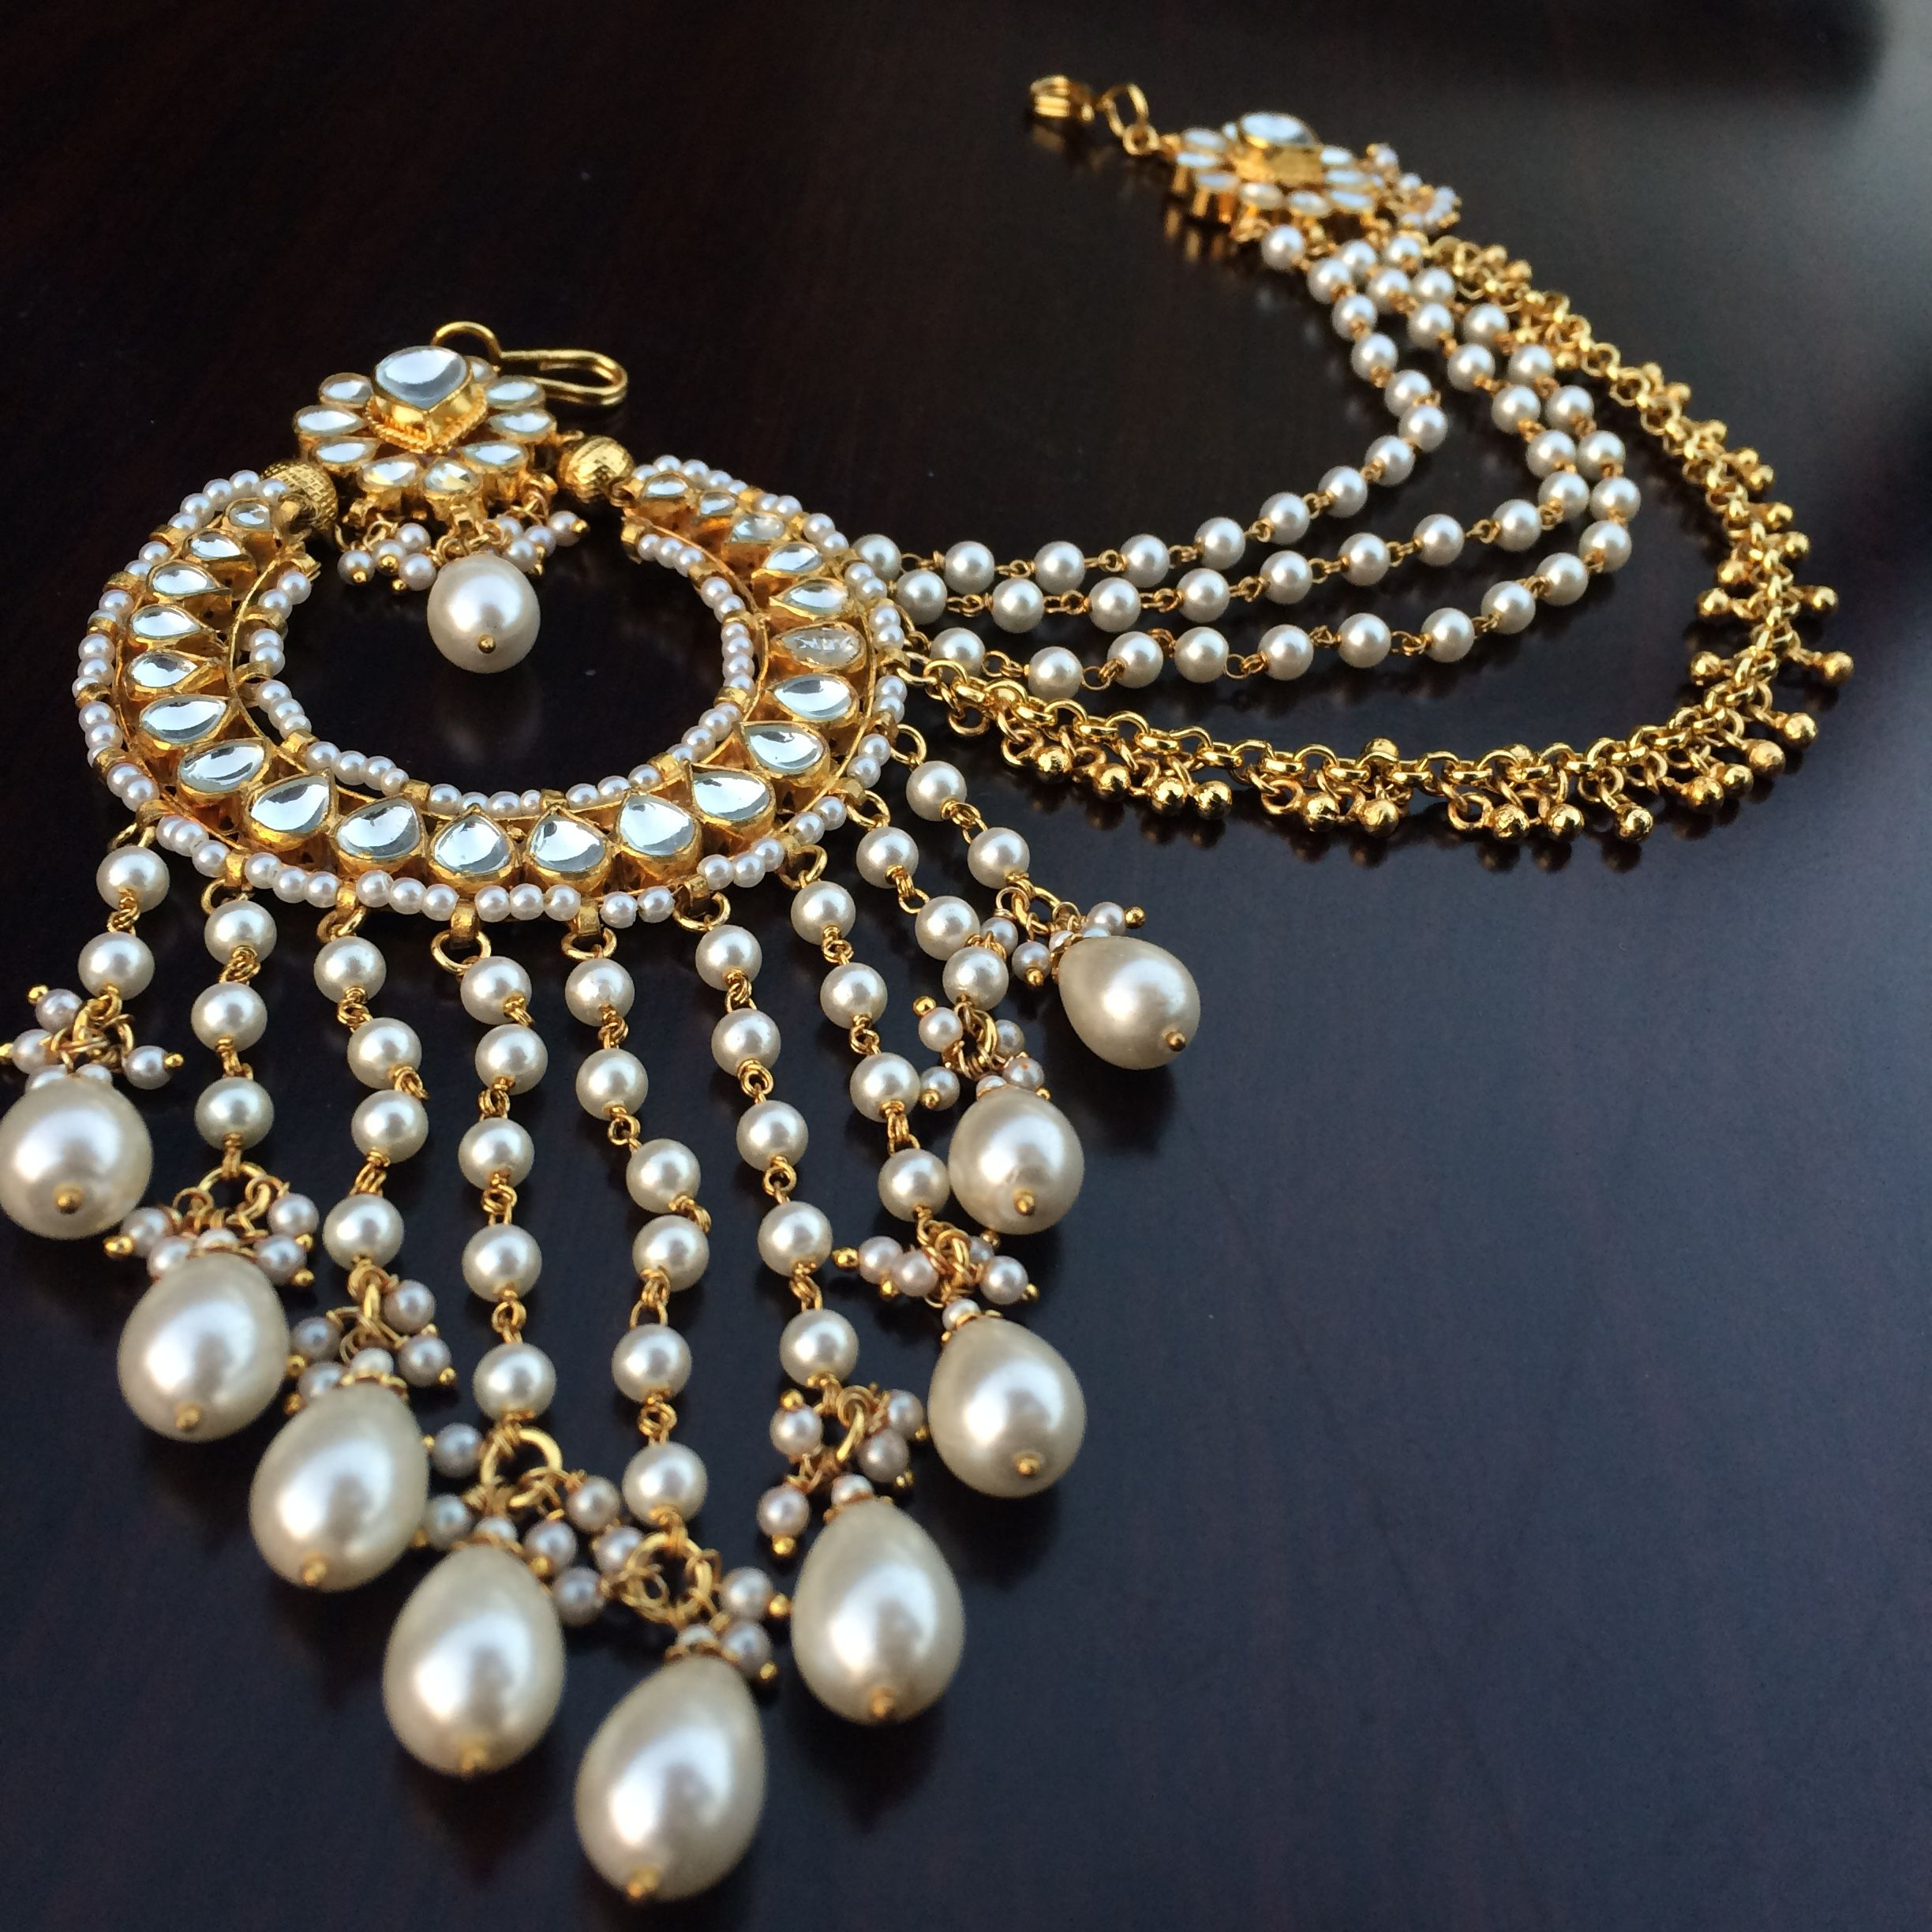 jewelry fashion registration and hosting pin web domain name jewellery indian